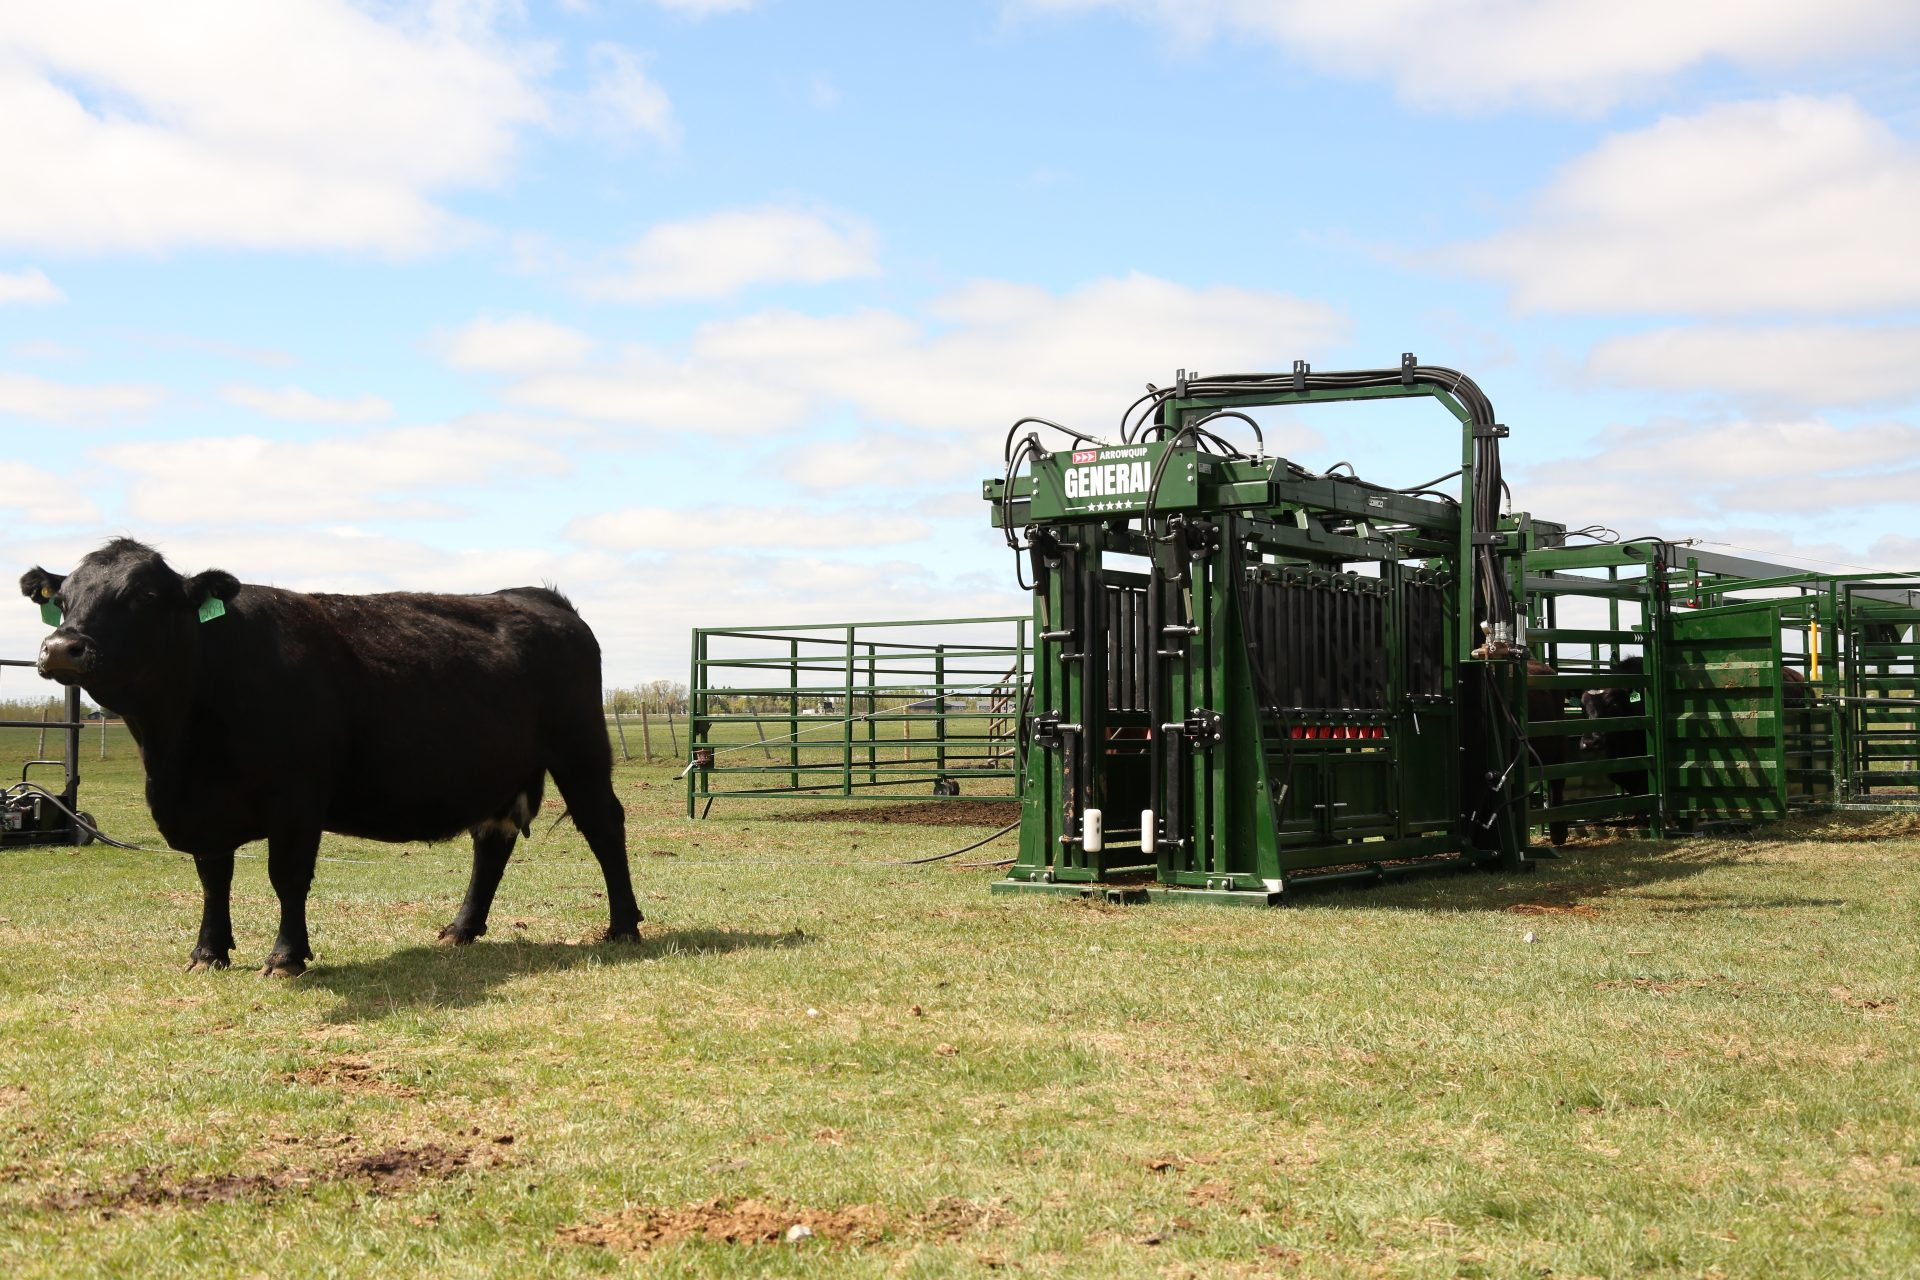 Black angus cow walking away from The General hydraulic chute